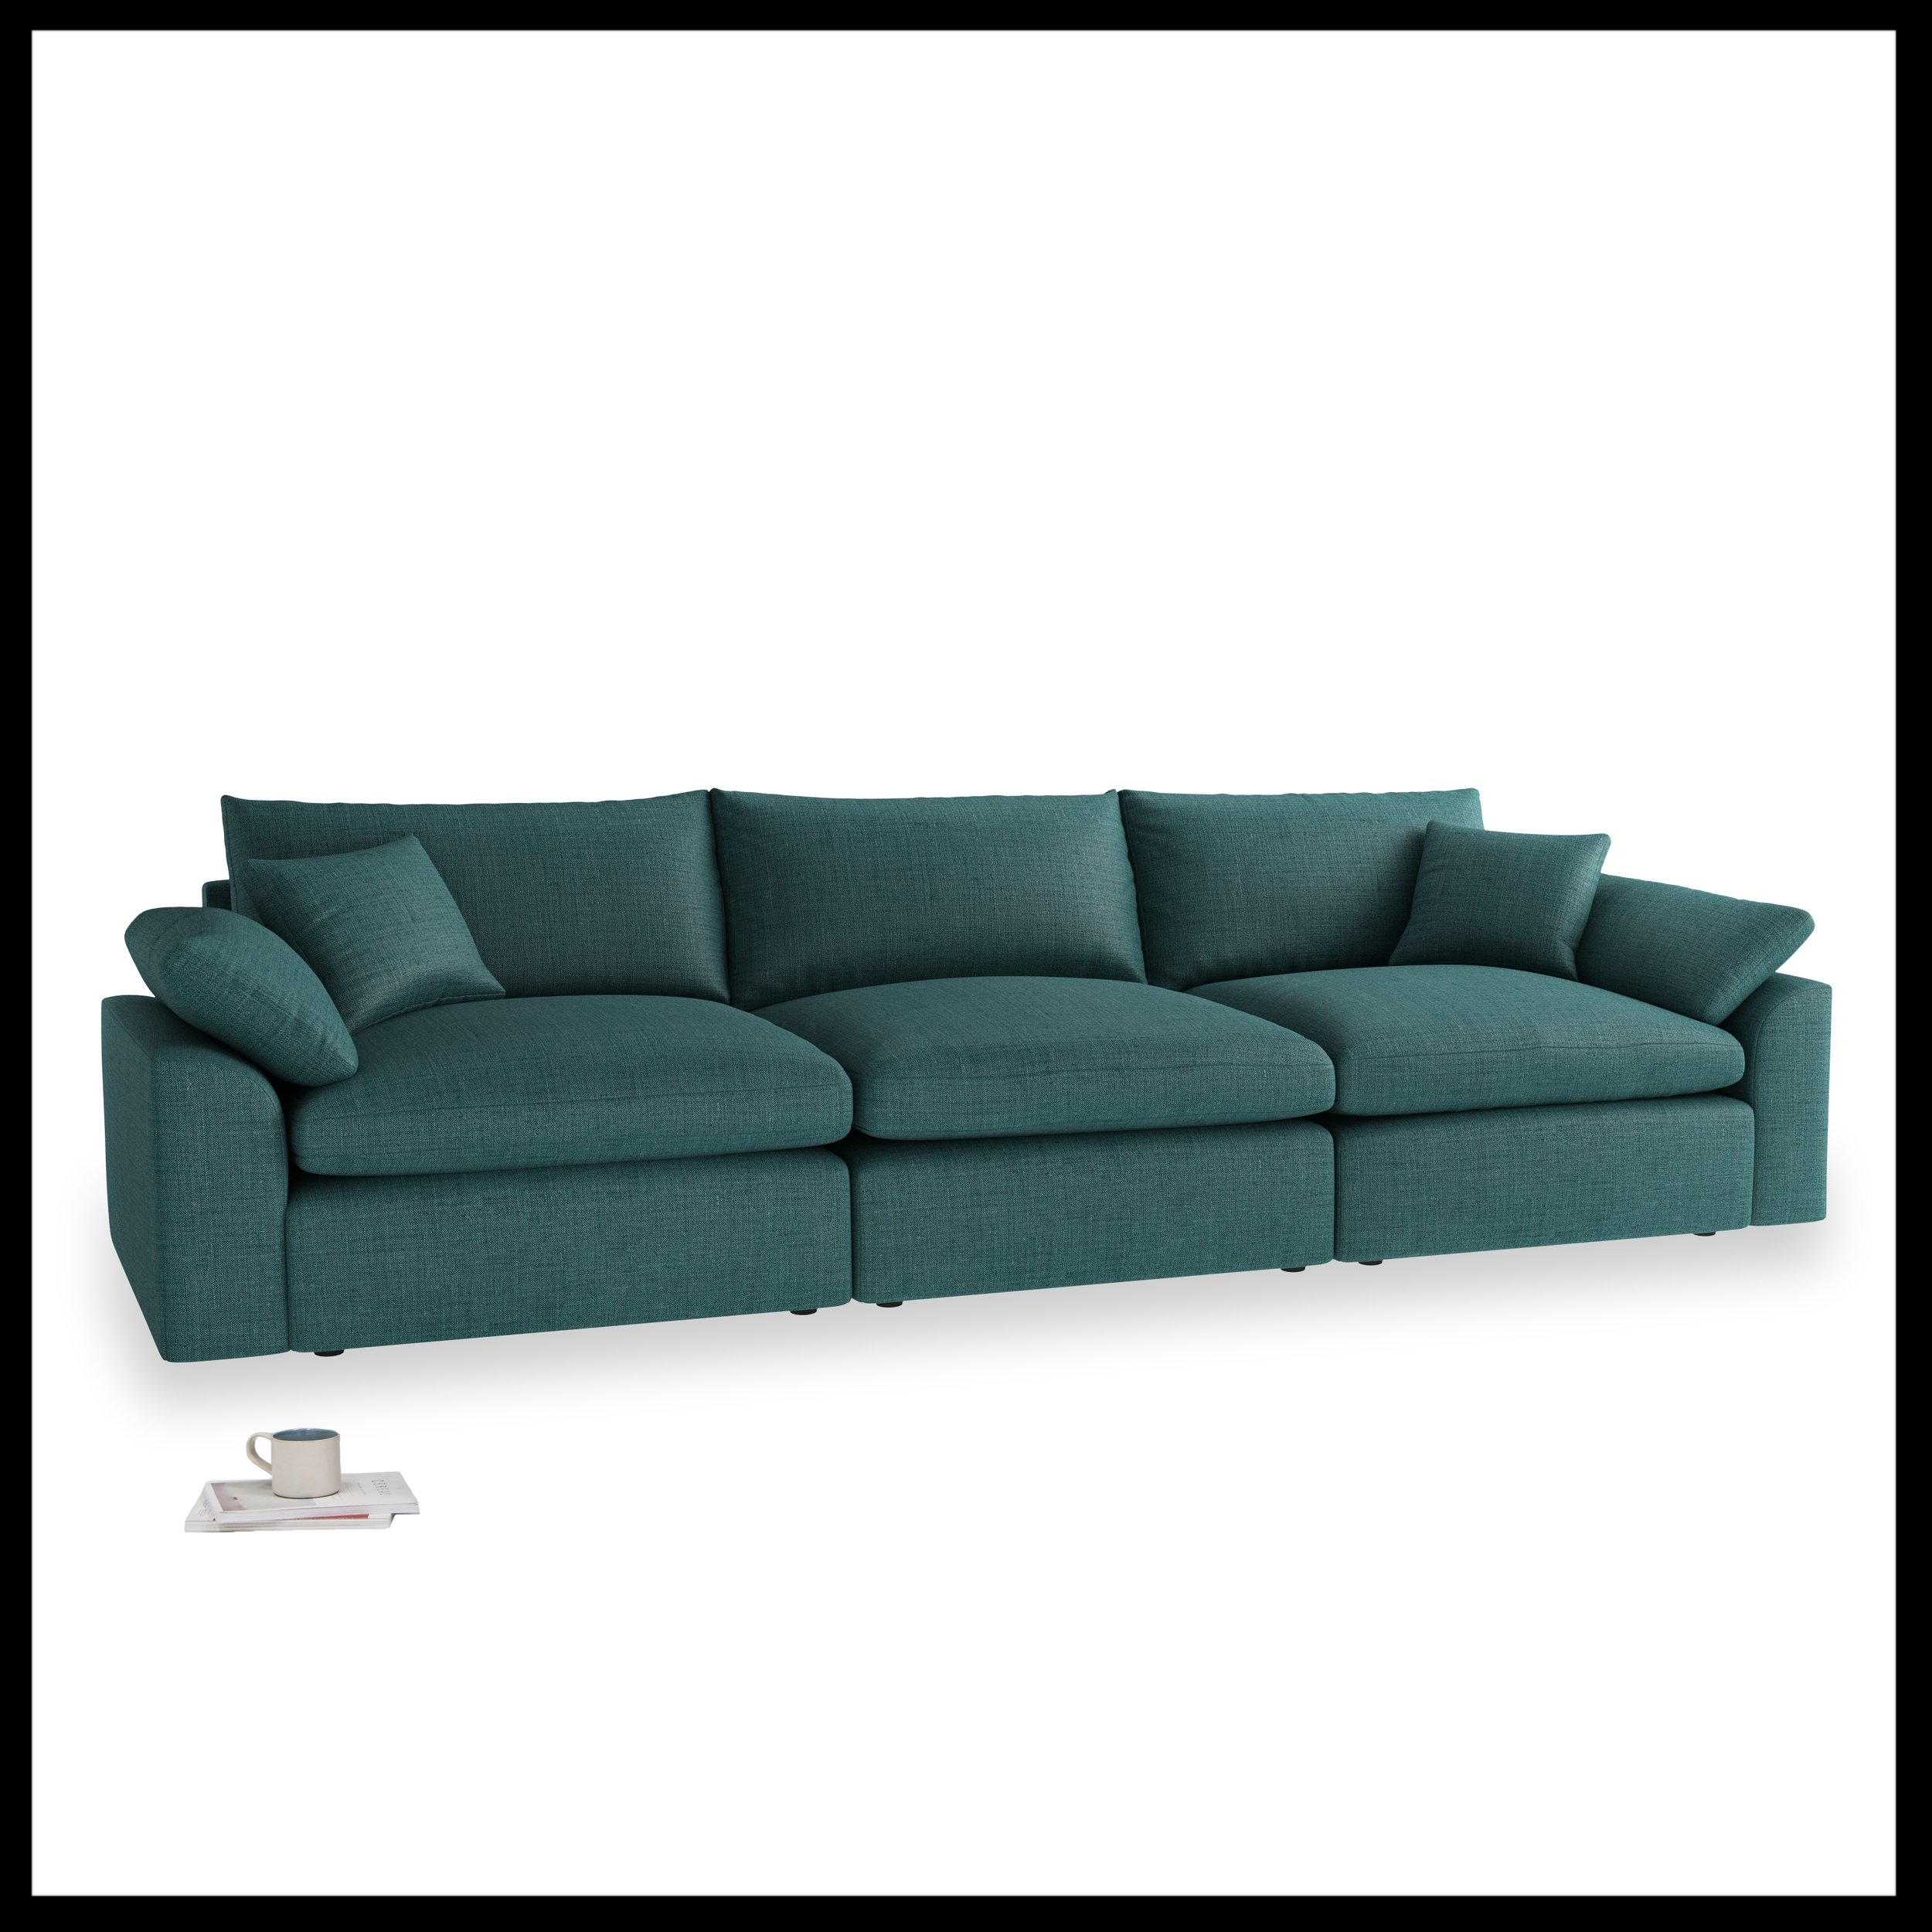 Loaf - NEW Cuddlemuffin modular sofa in Deep Sea classic linen, from £1990.jpg